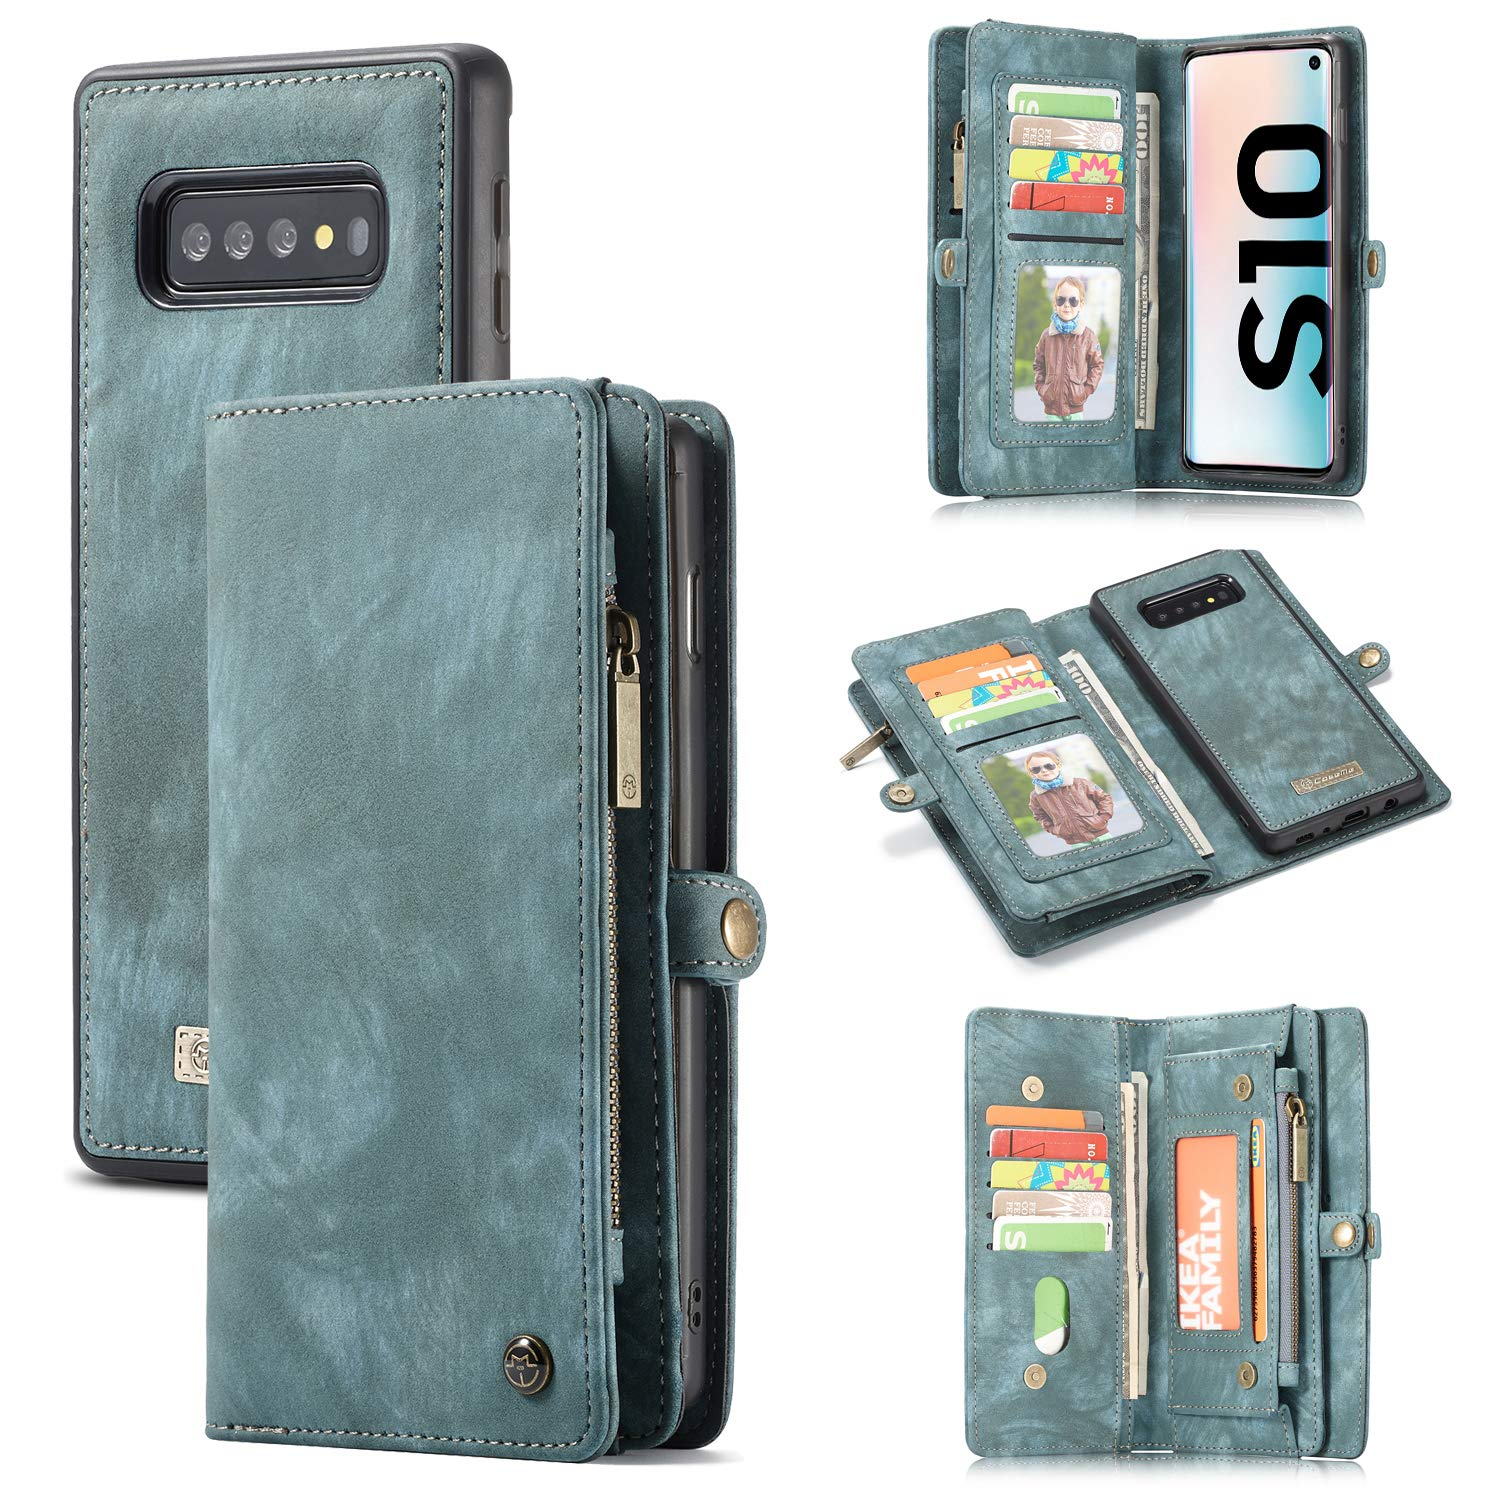 Galaxy S10 /S10 Plus Wallet Case,Zttopo 2 in 1 Leather Zipper Detachable Magnetic 11 Card Slots Card Slots Money Pocket Clutch Cover with Free Screen Protector (Blue-Green, Samsung Galaxy S10)